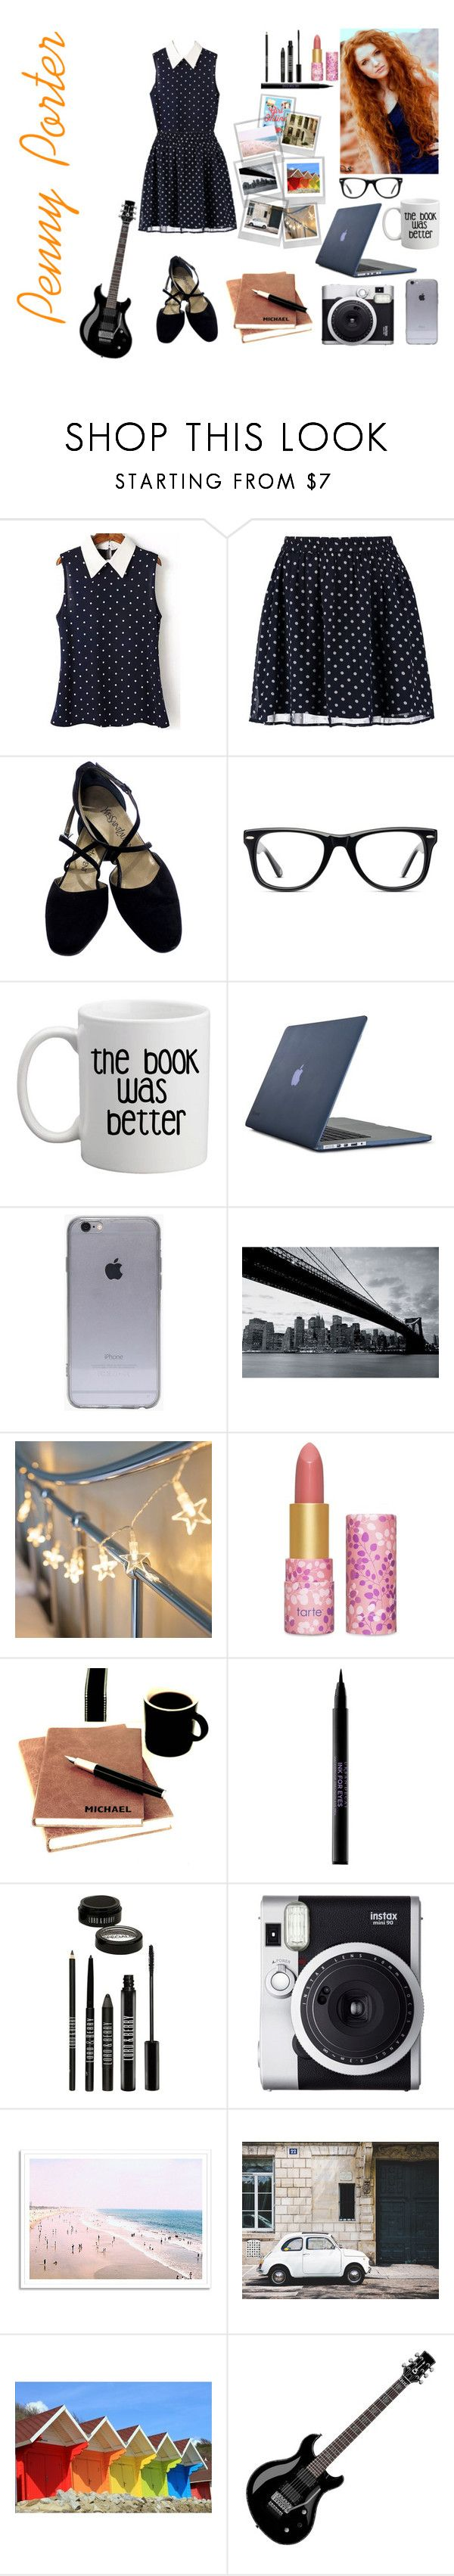 """""""Penny Porter / Girl Online by Zoe Sugg"""" by emily-esteves ❤ liked on Polyvore featuring Polaroid, Vero Moda, Yves Saint Laurent, Muse, Speck, 1Wall, tarte, Urban Decay, Lord & Berry and Fuji"""